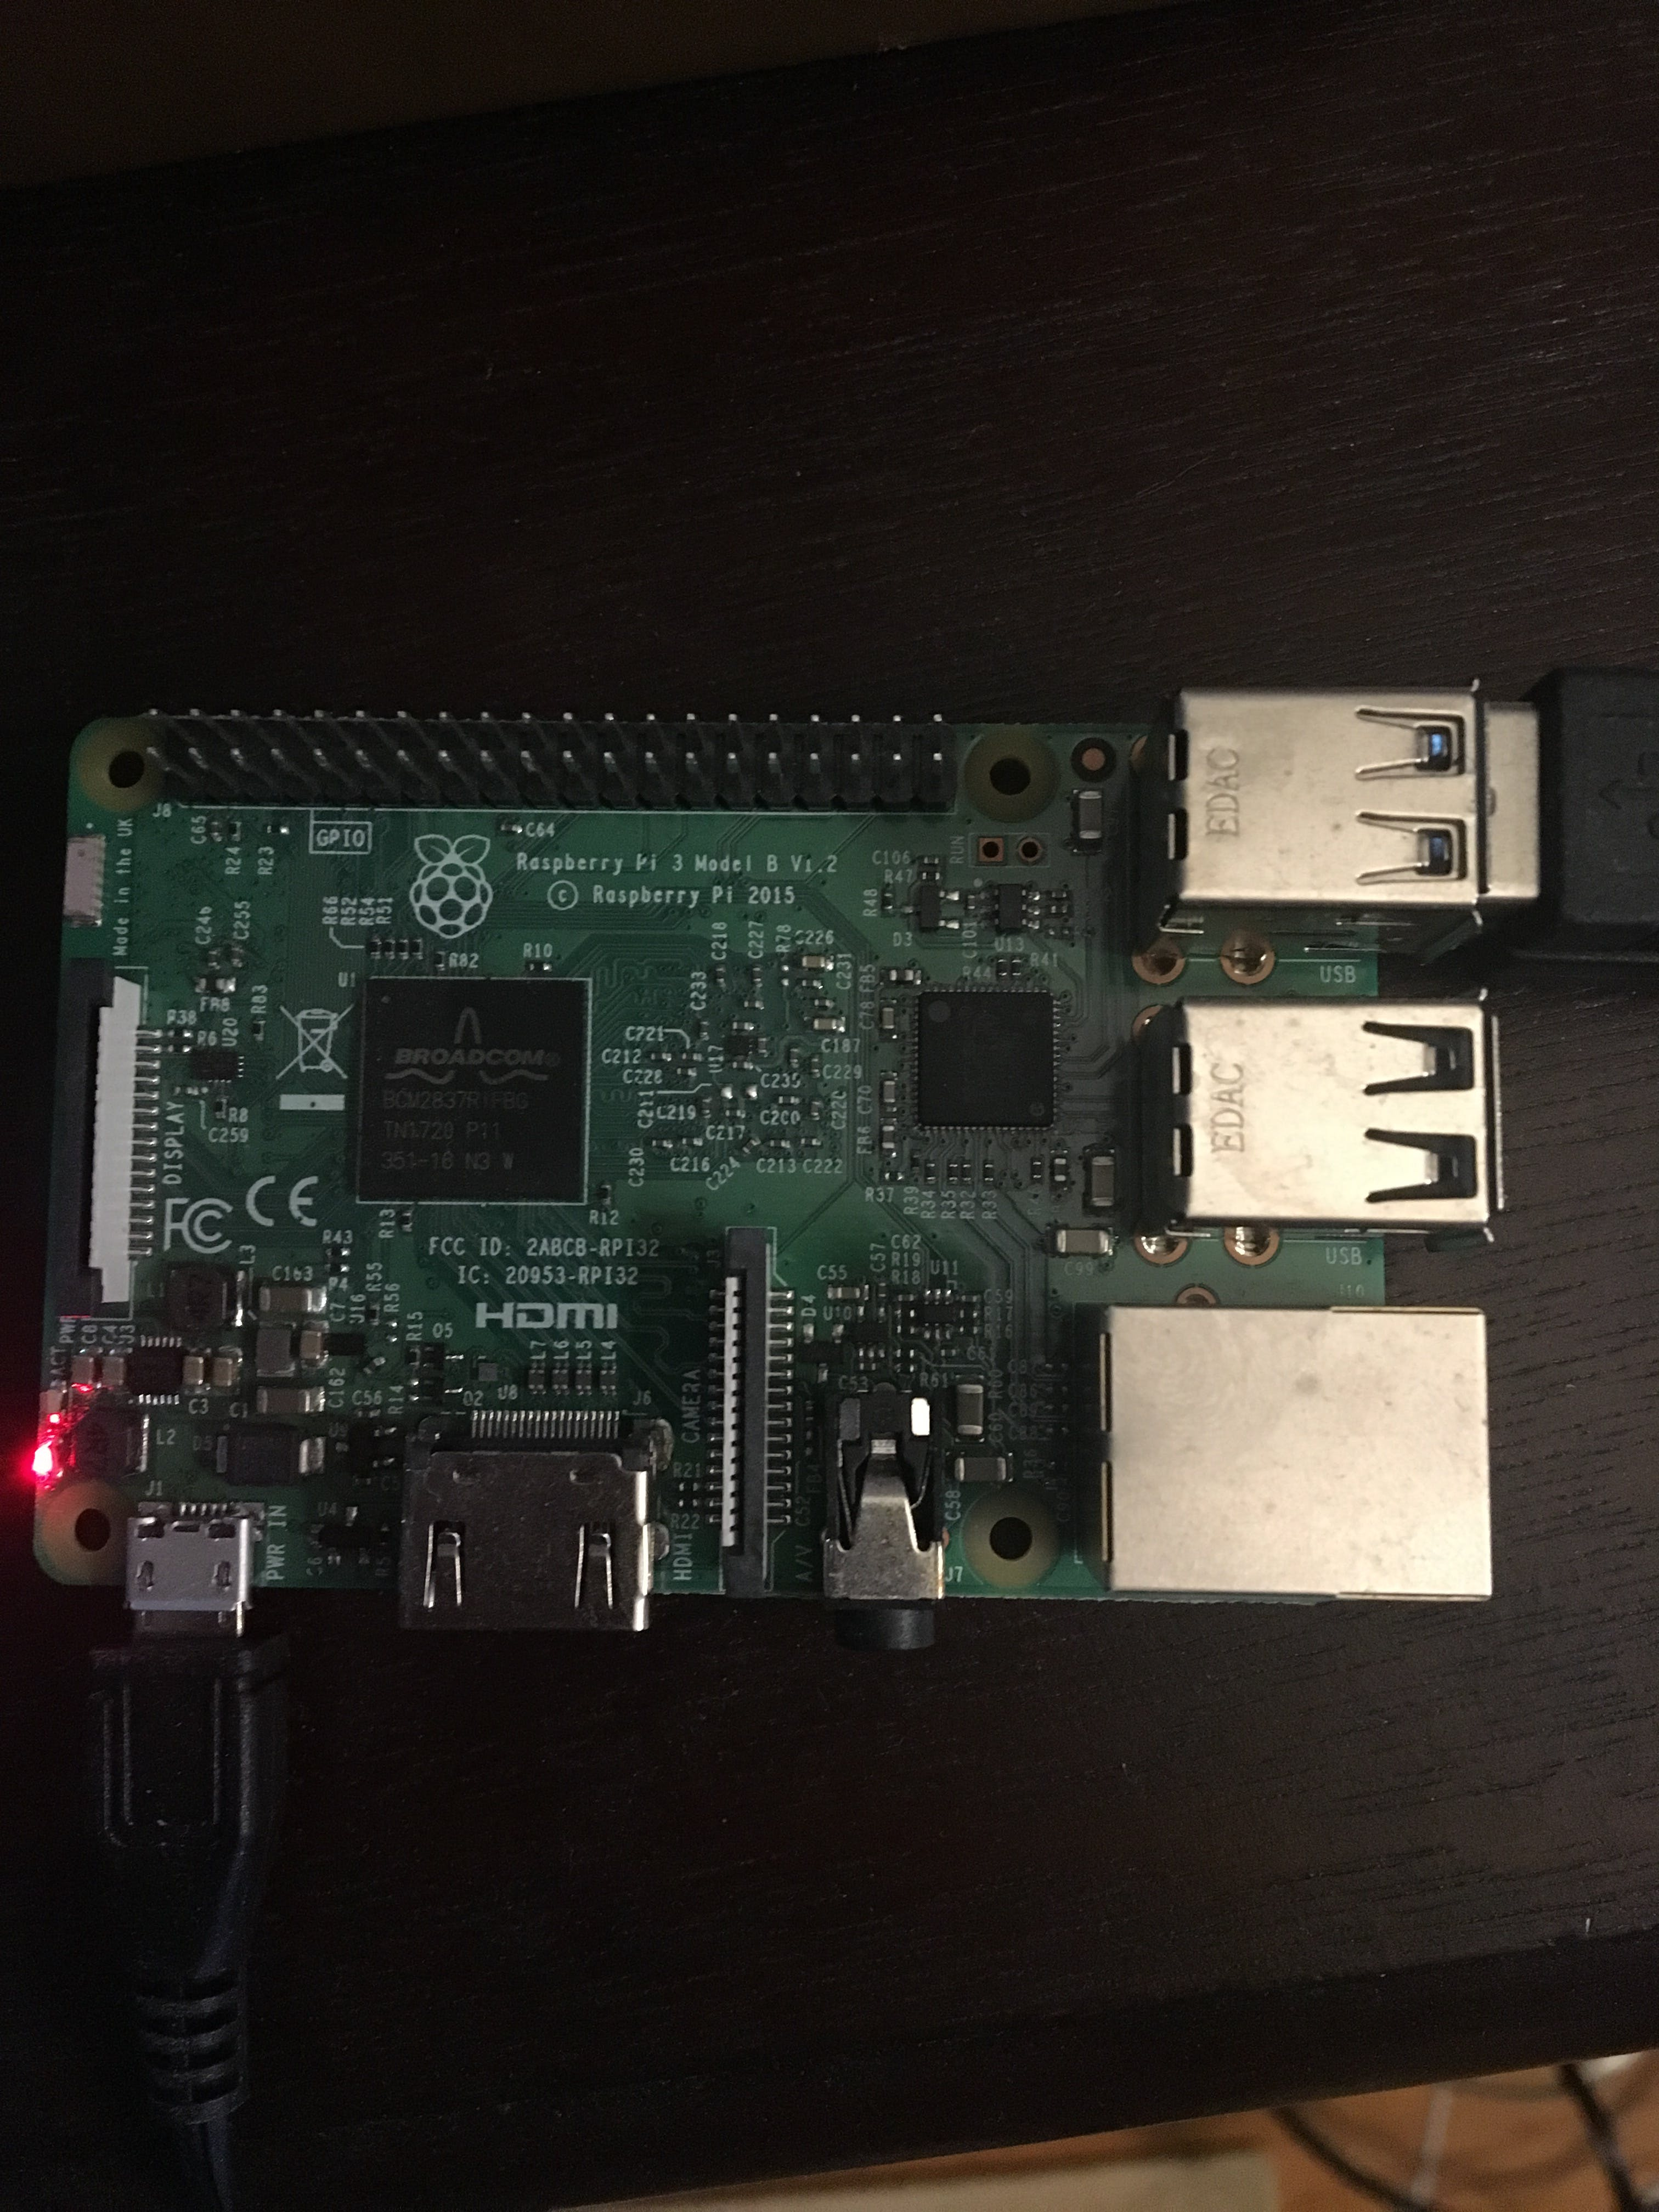 The Raspberry pi (where the bot is run and arduinos plugged into)